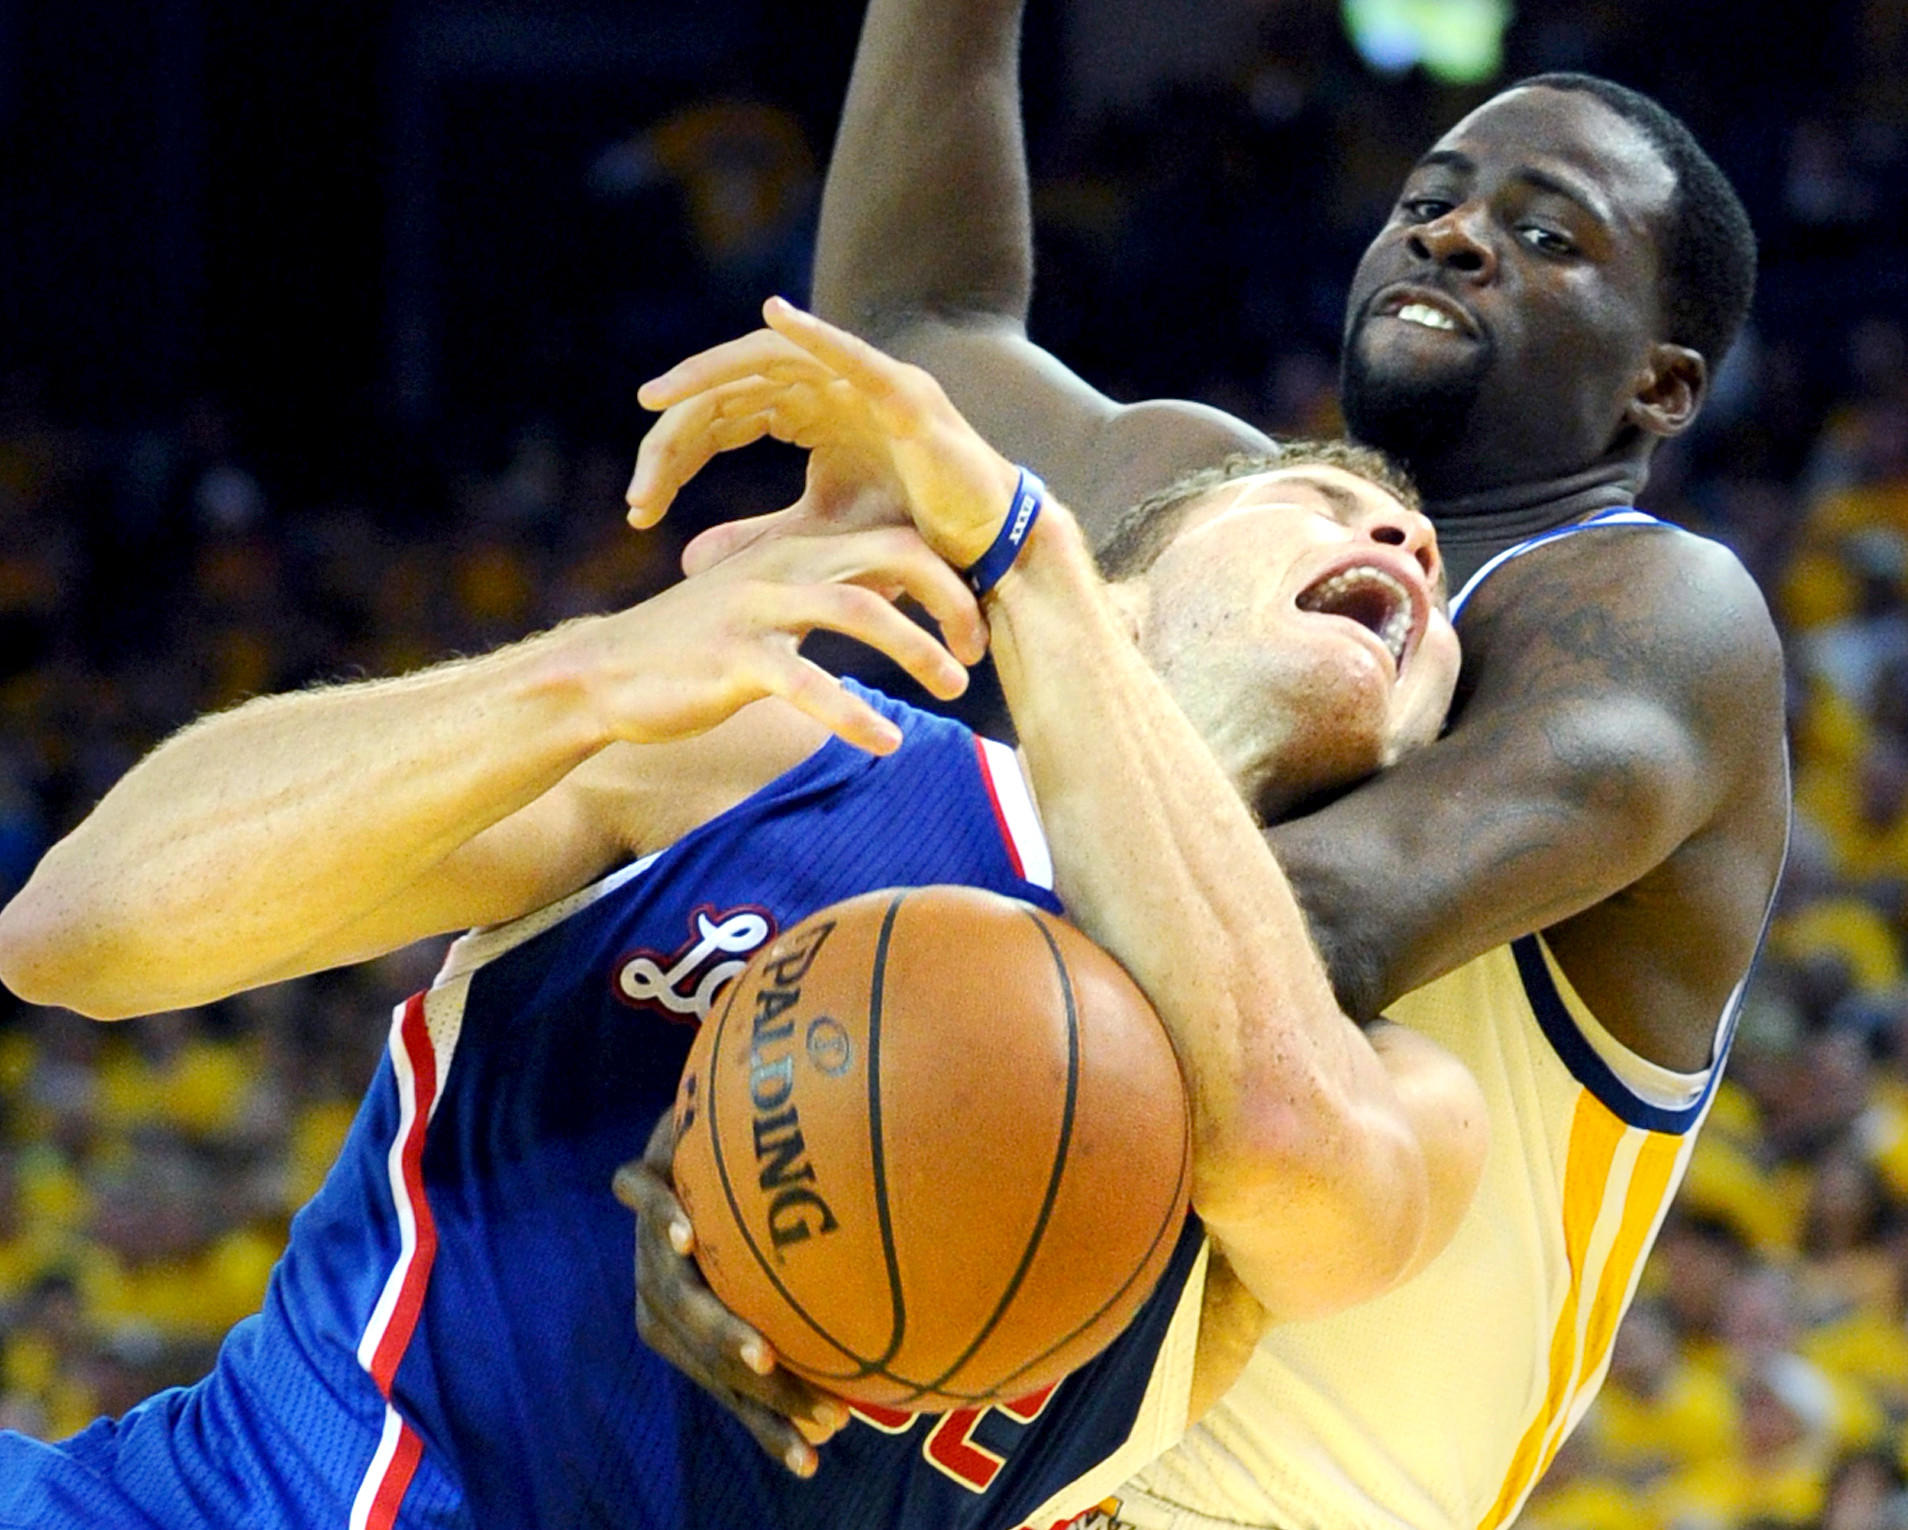 Clippers power forward Blake Griffin is fouled by Warriors power forward Draymond Green on a drive to the basket in the first half Thursday night in Oakland.